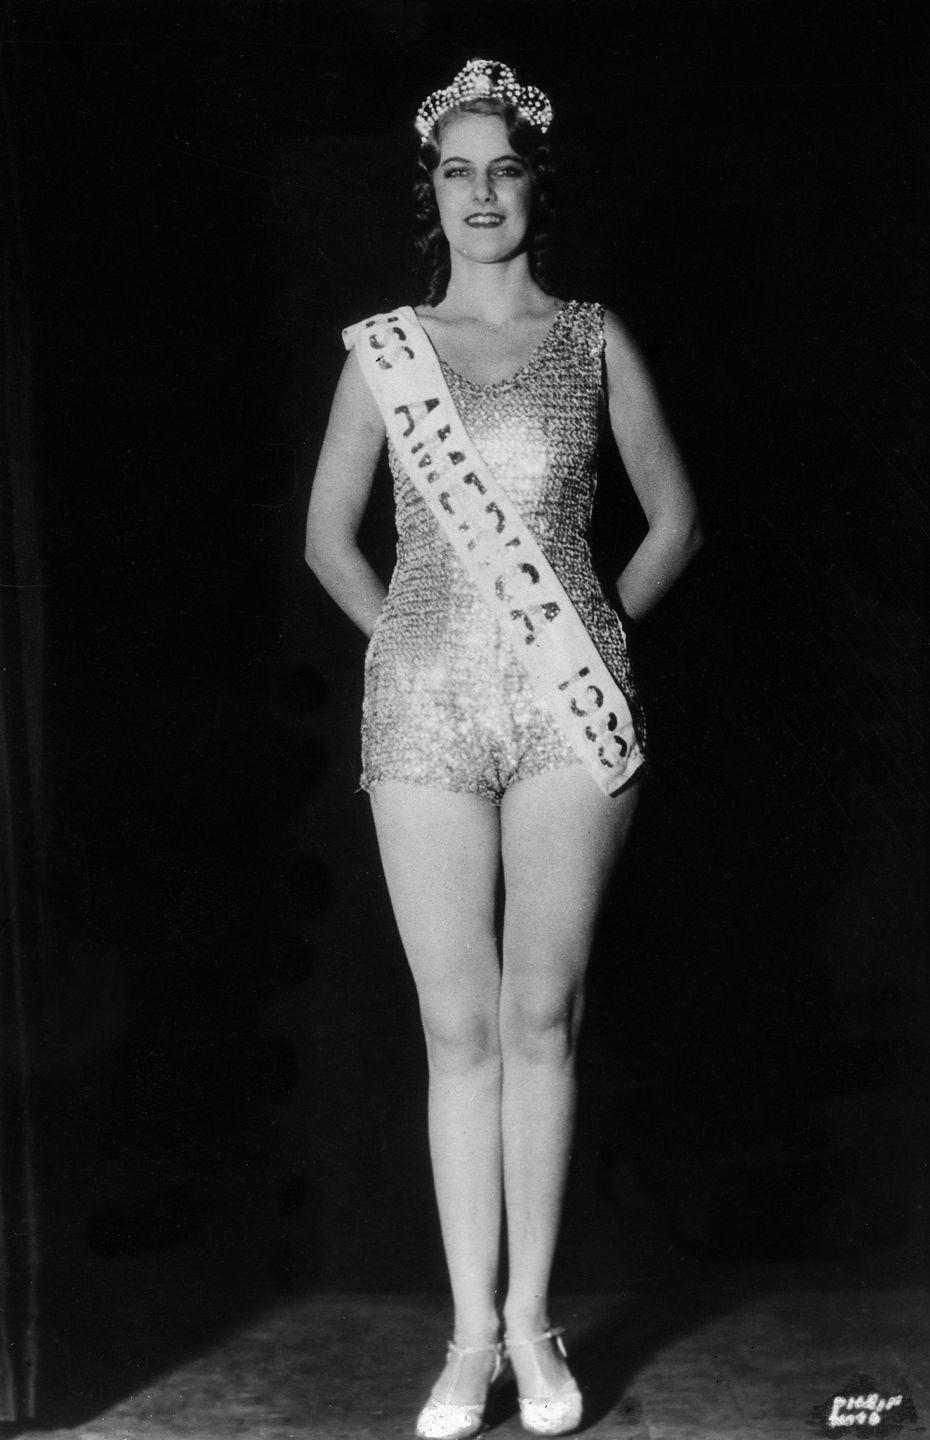 <p>Margarethe Ekdahl from Tampa, Florida wore a sequined unitard with her Miss America crown in 1930. She was decades ahead of her time, sporting the look way before bodysuits were in. </p>